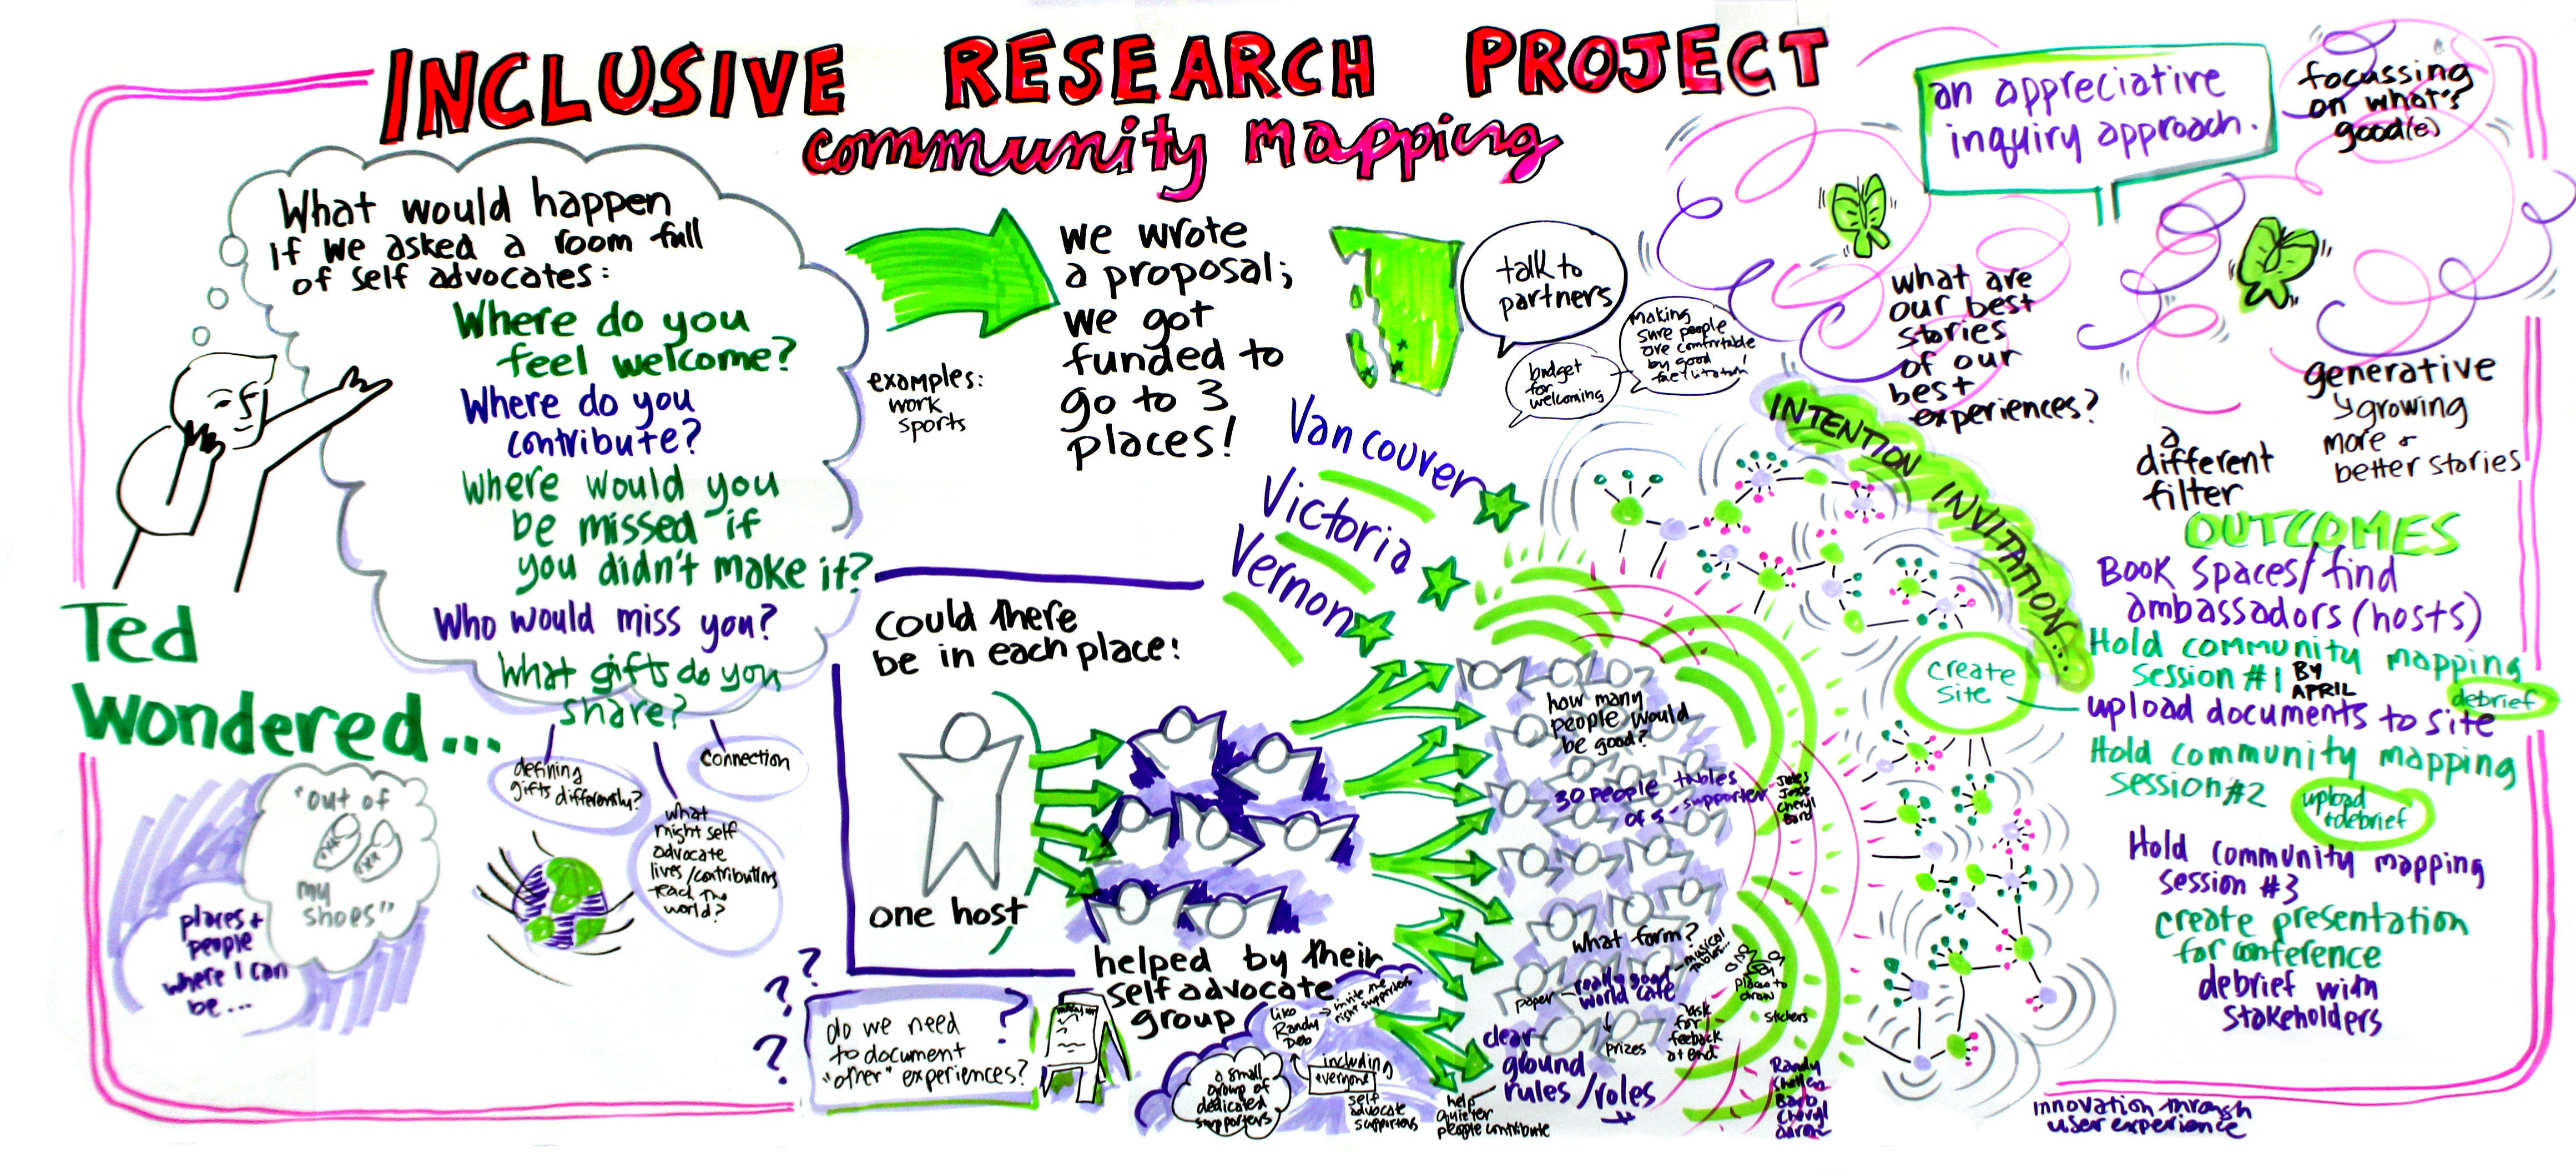 Community Mapping Project Planning Graphic Imagineacircle